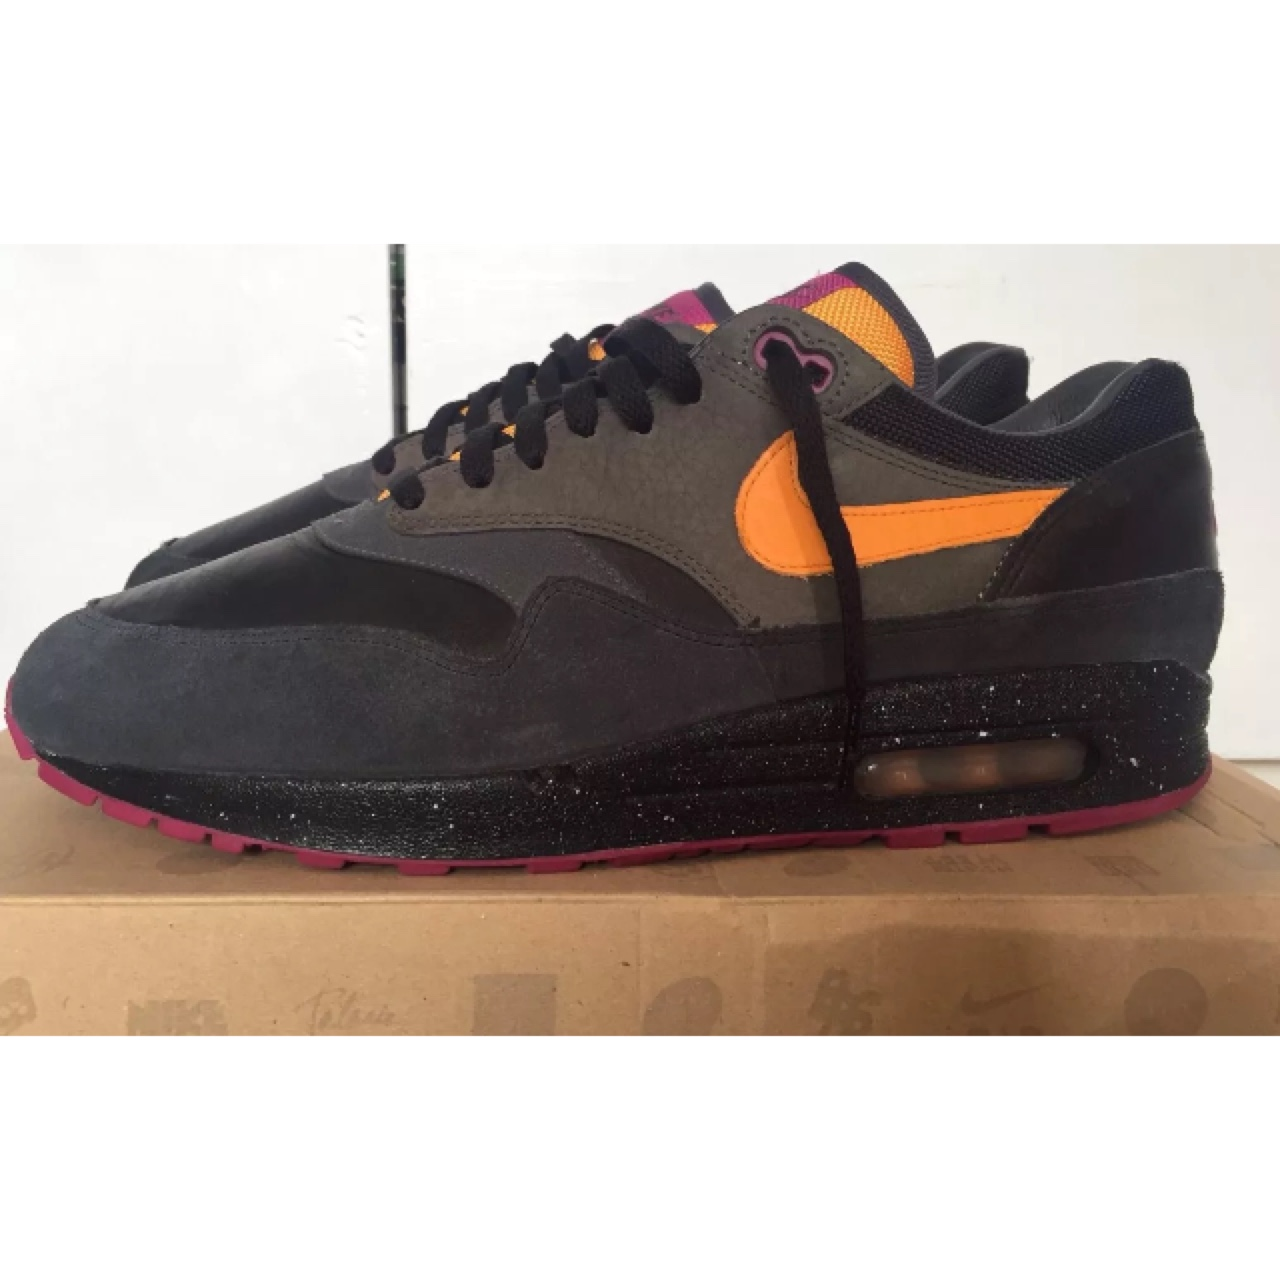 Rare Nike Air Max 1 Terra Huarache Pack 2006 UK 10